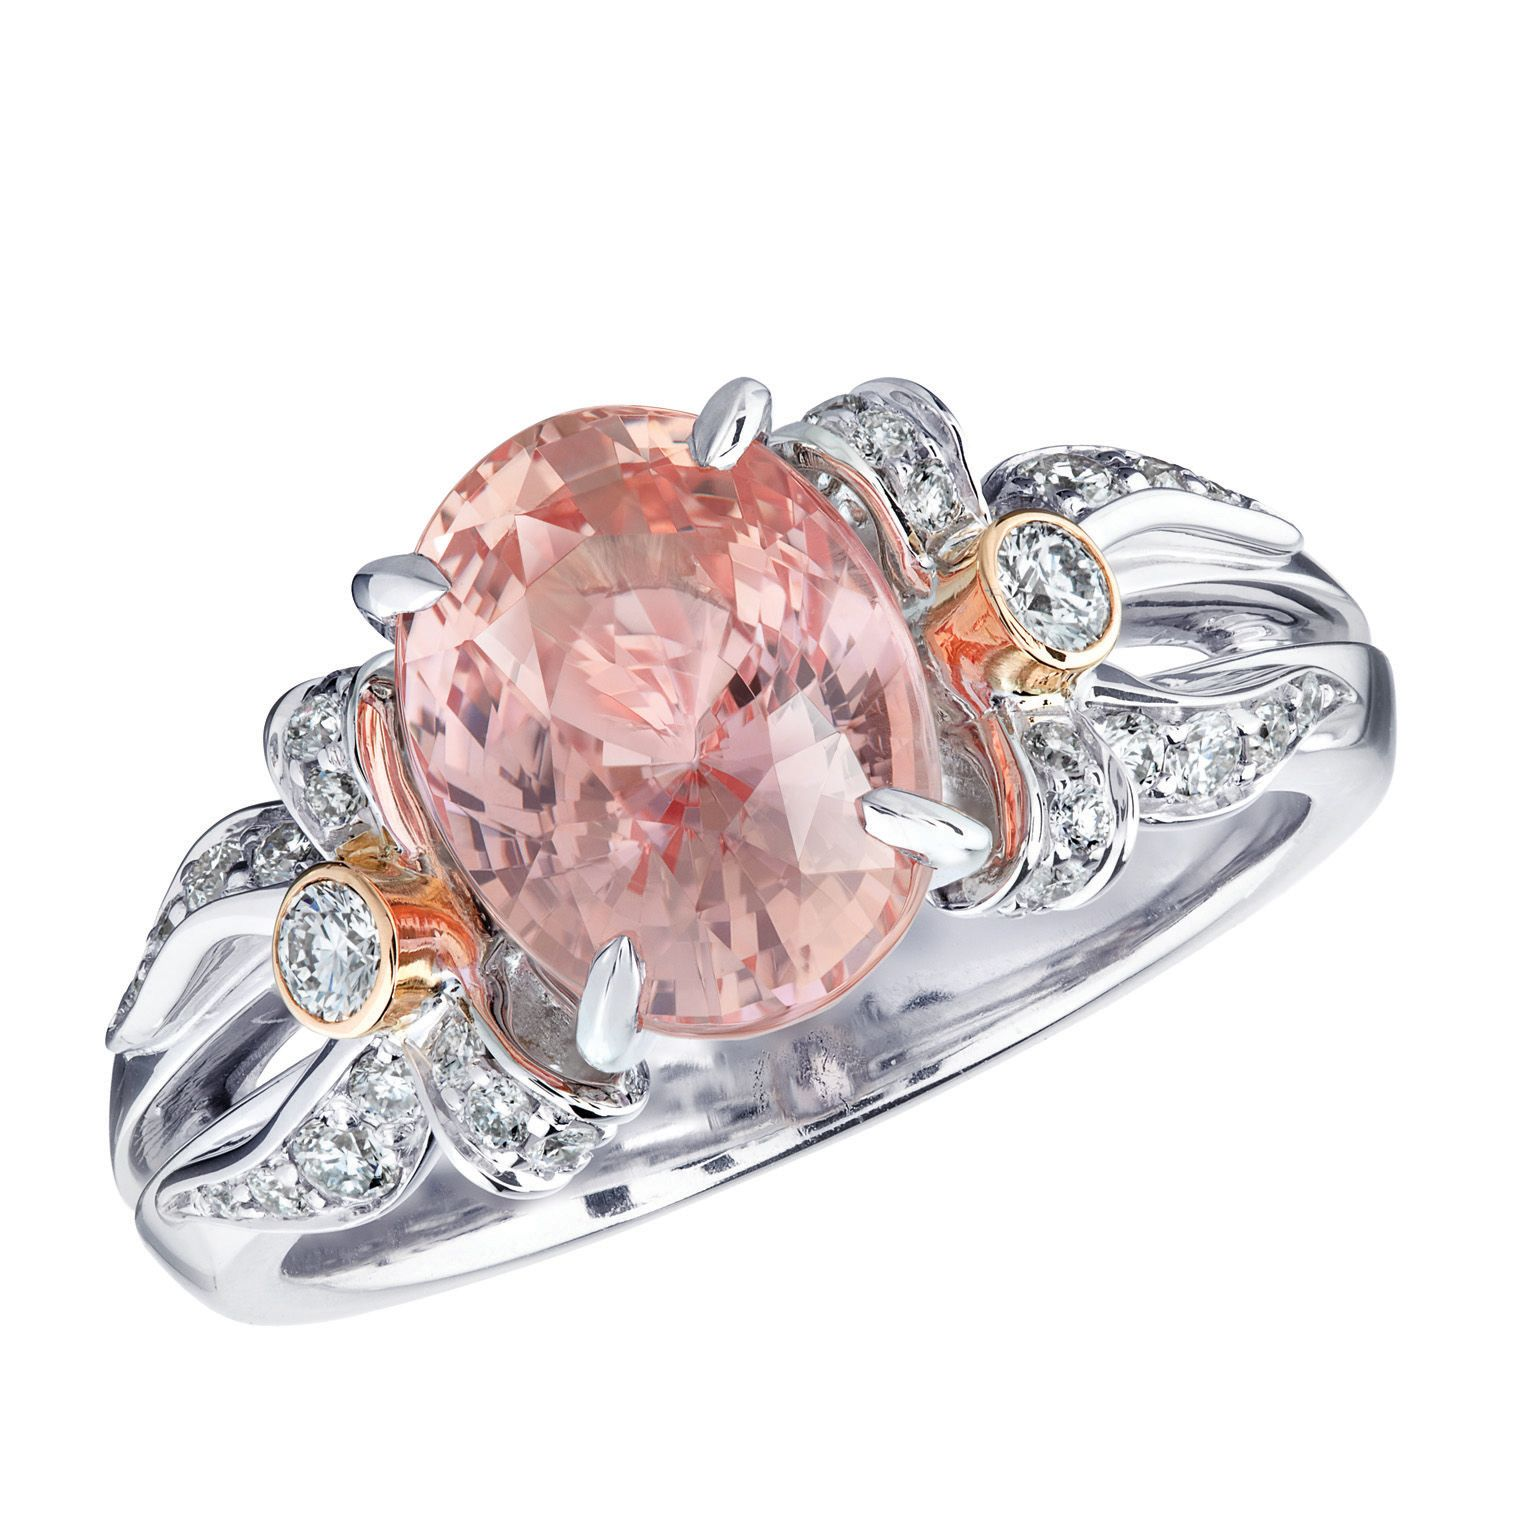 Fabergé Alix Padparadscha Ring #Fabergé #diamond #padparadscha #ring ...